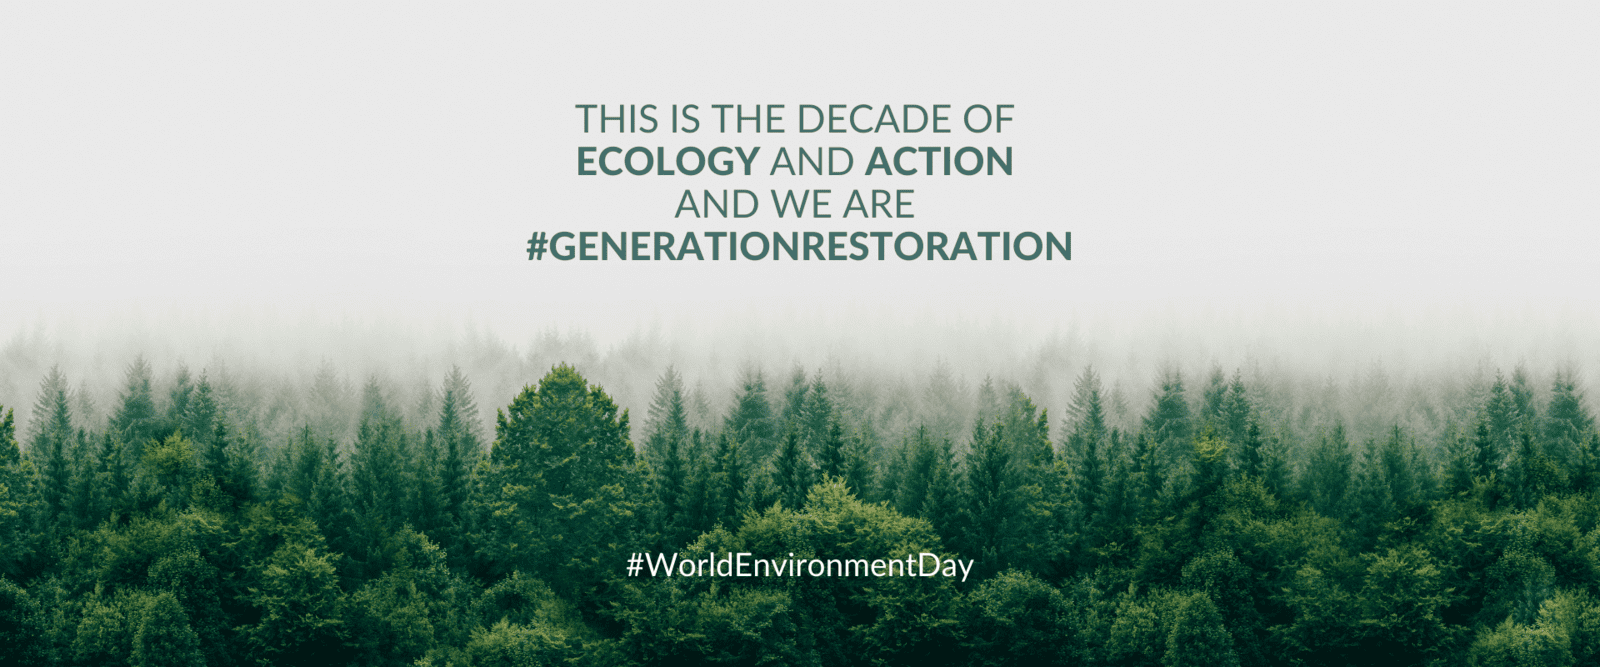 This is the decade of Ecology and Action and we are #GenerationRestoration